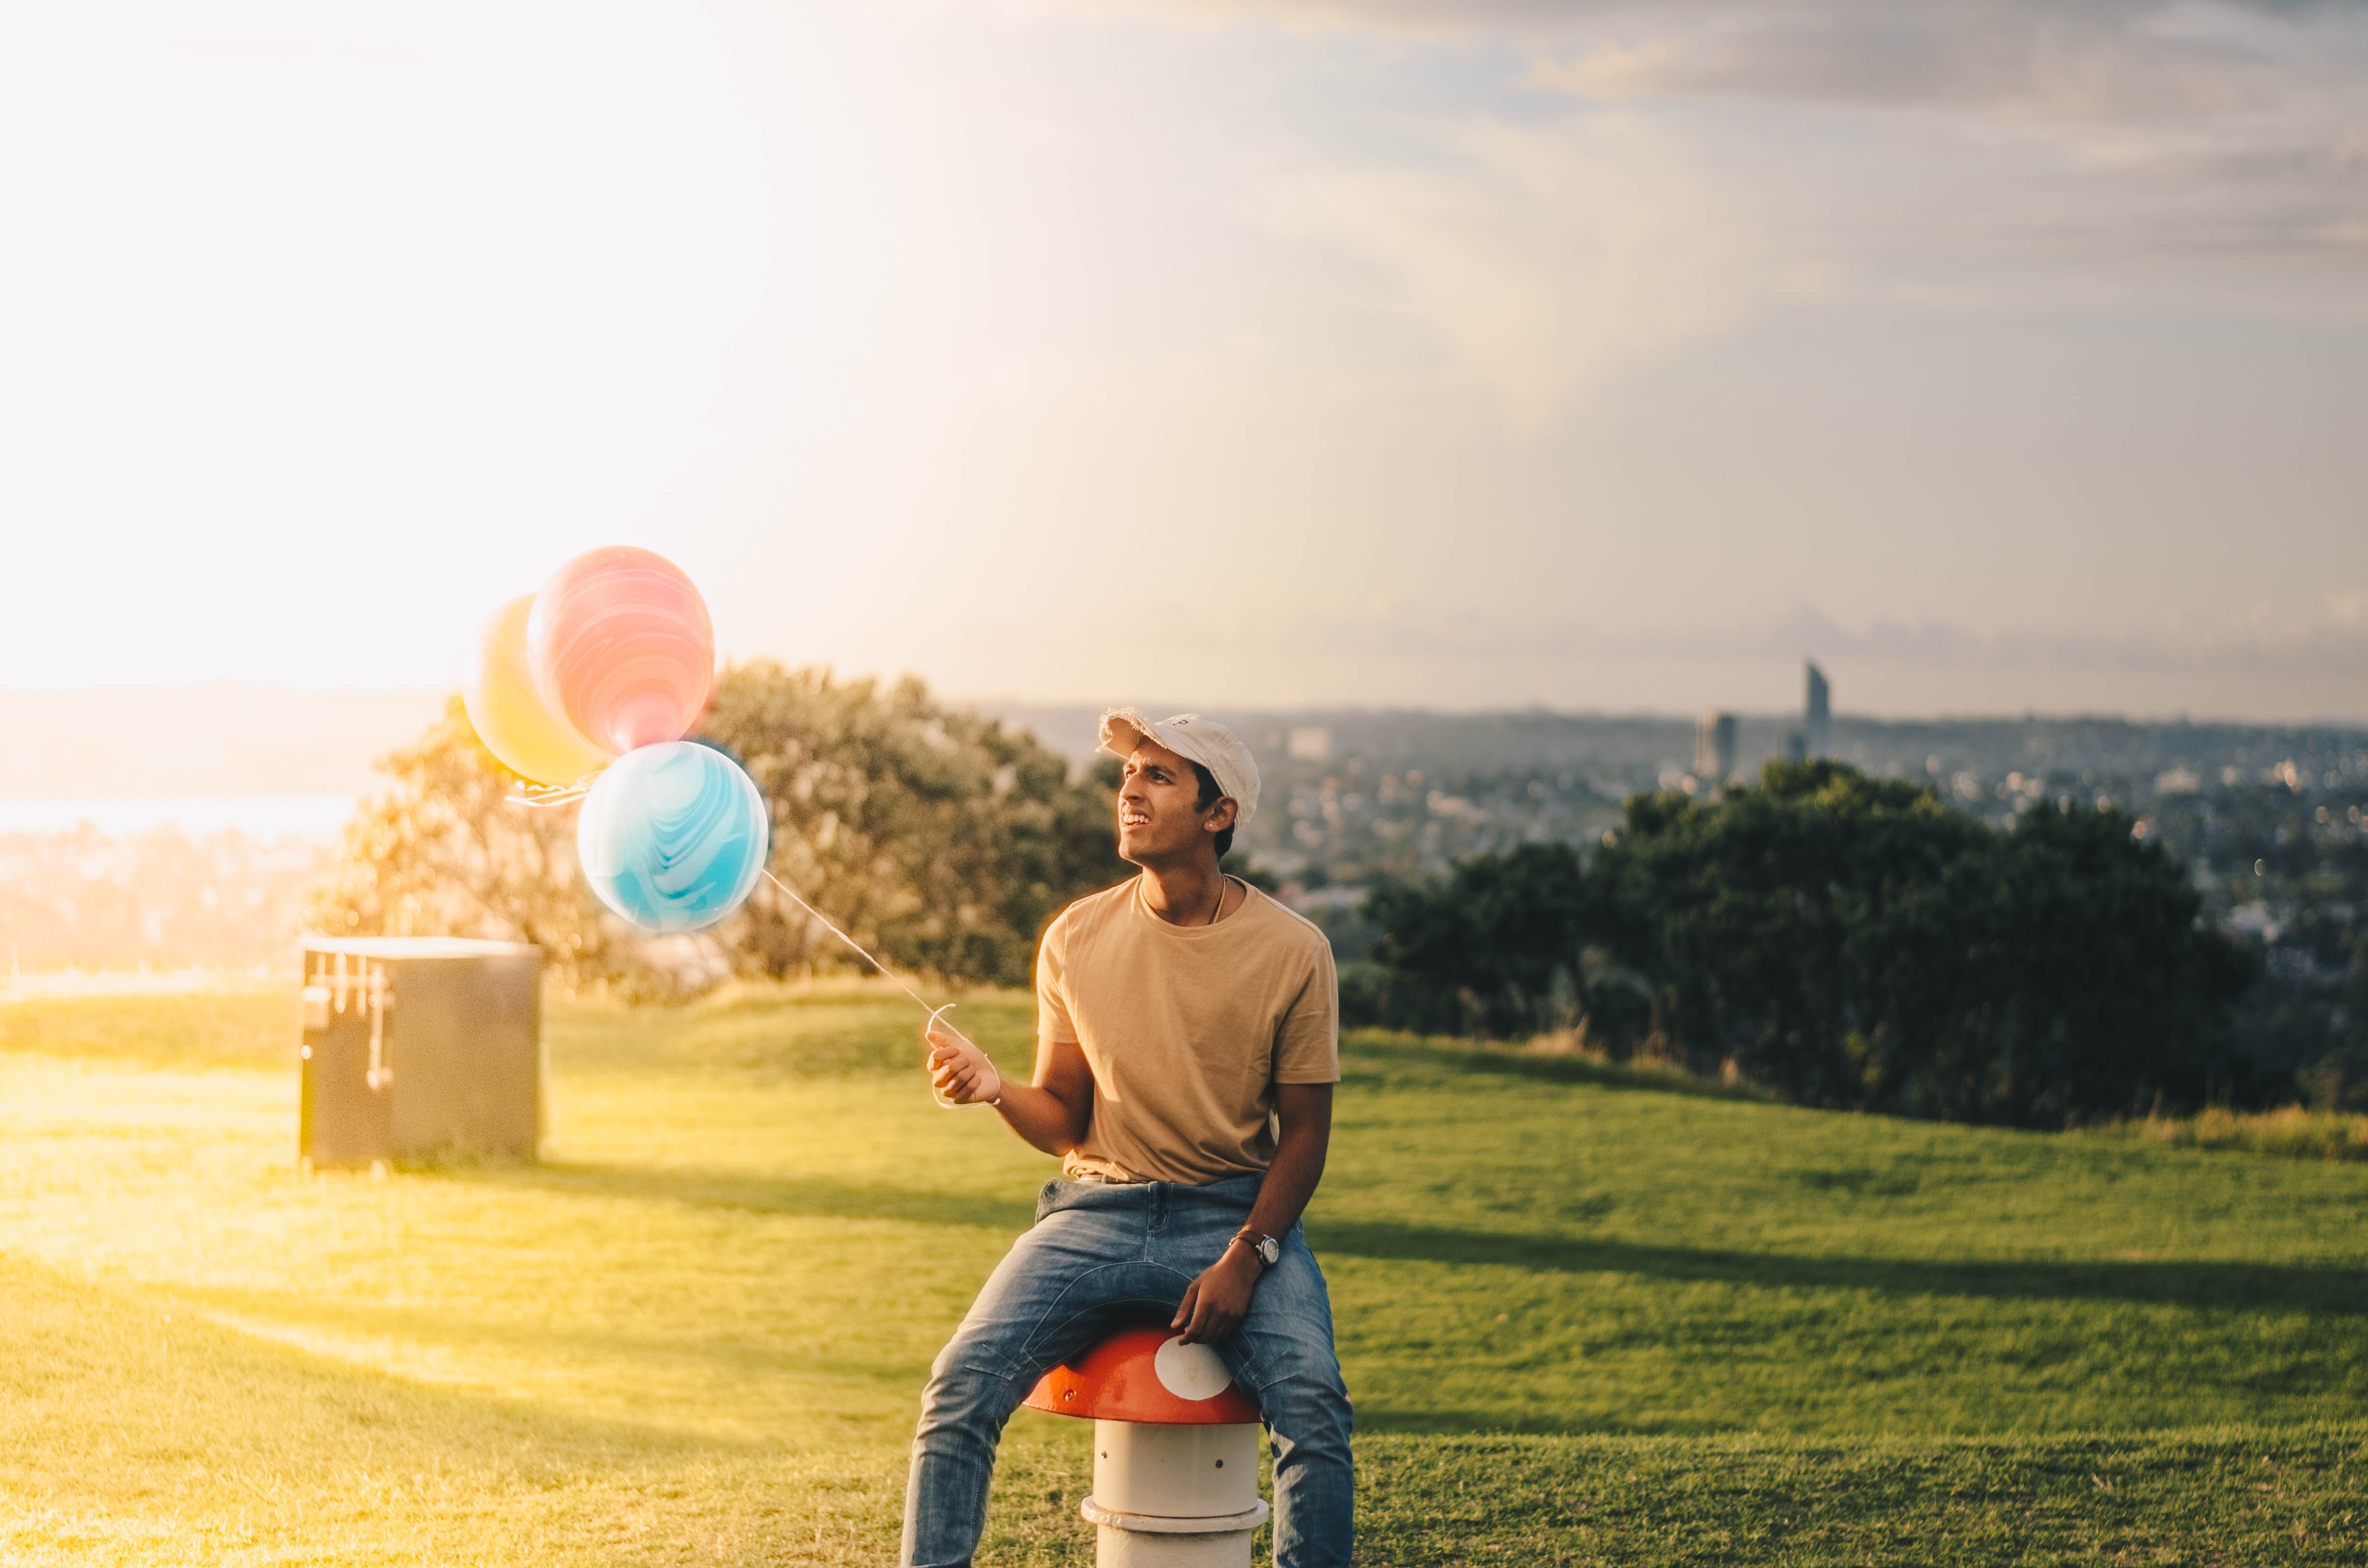 Happy man holding colorful balloons in a sunny field